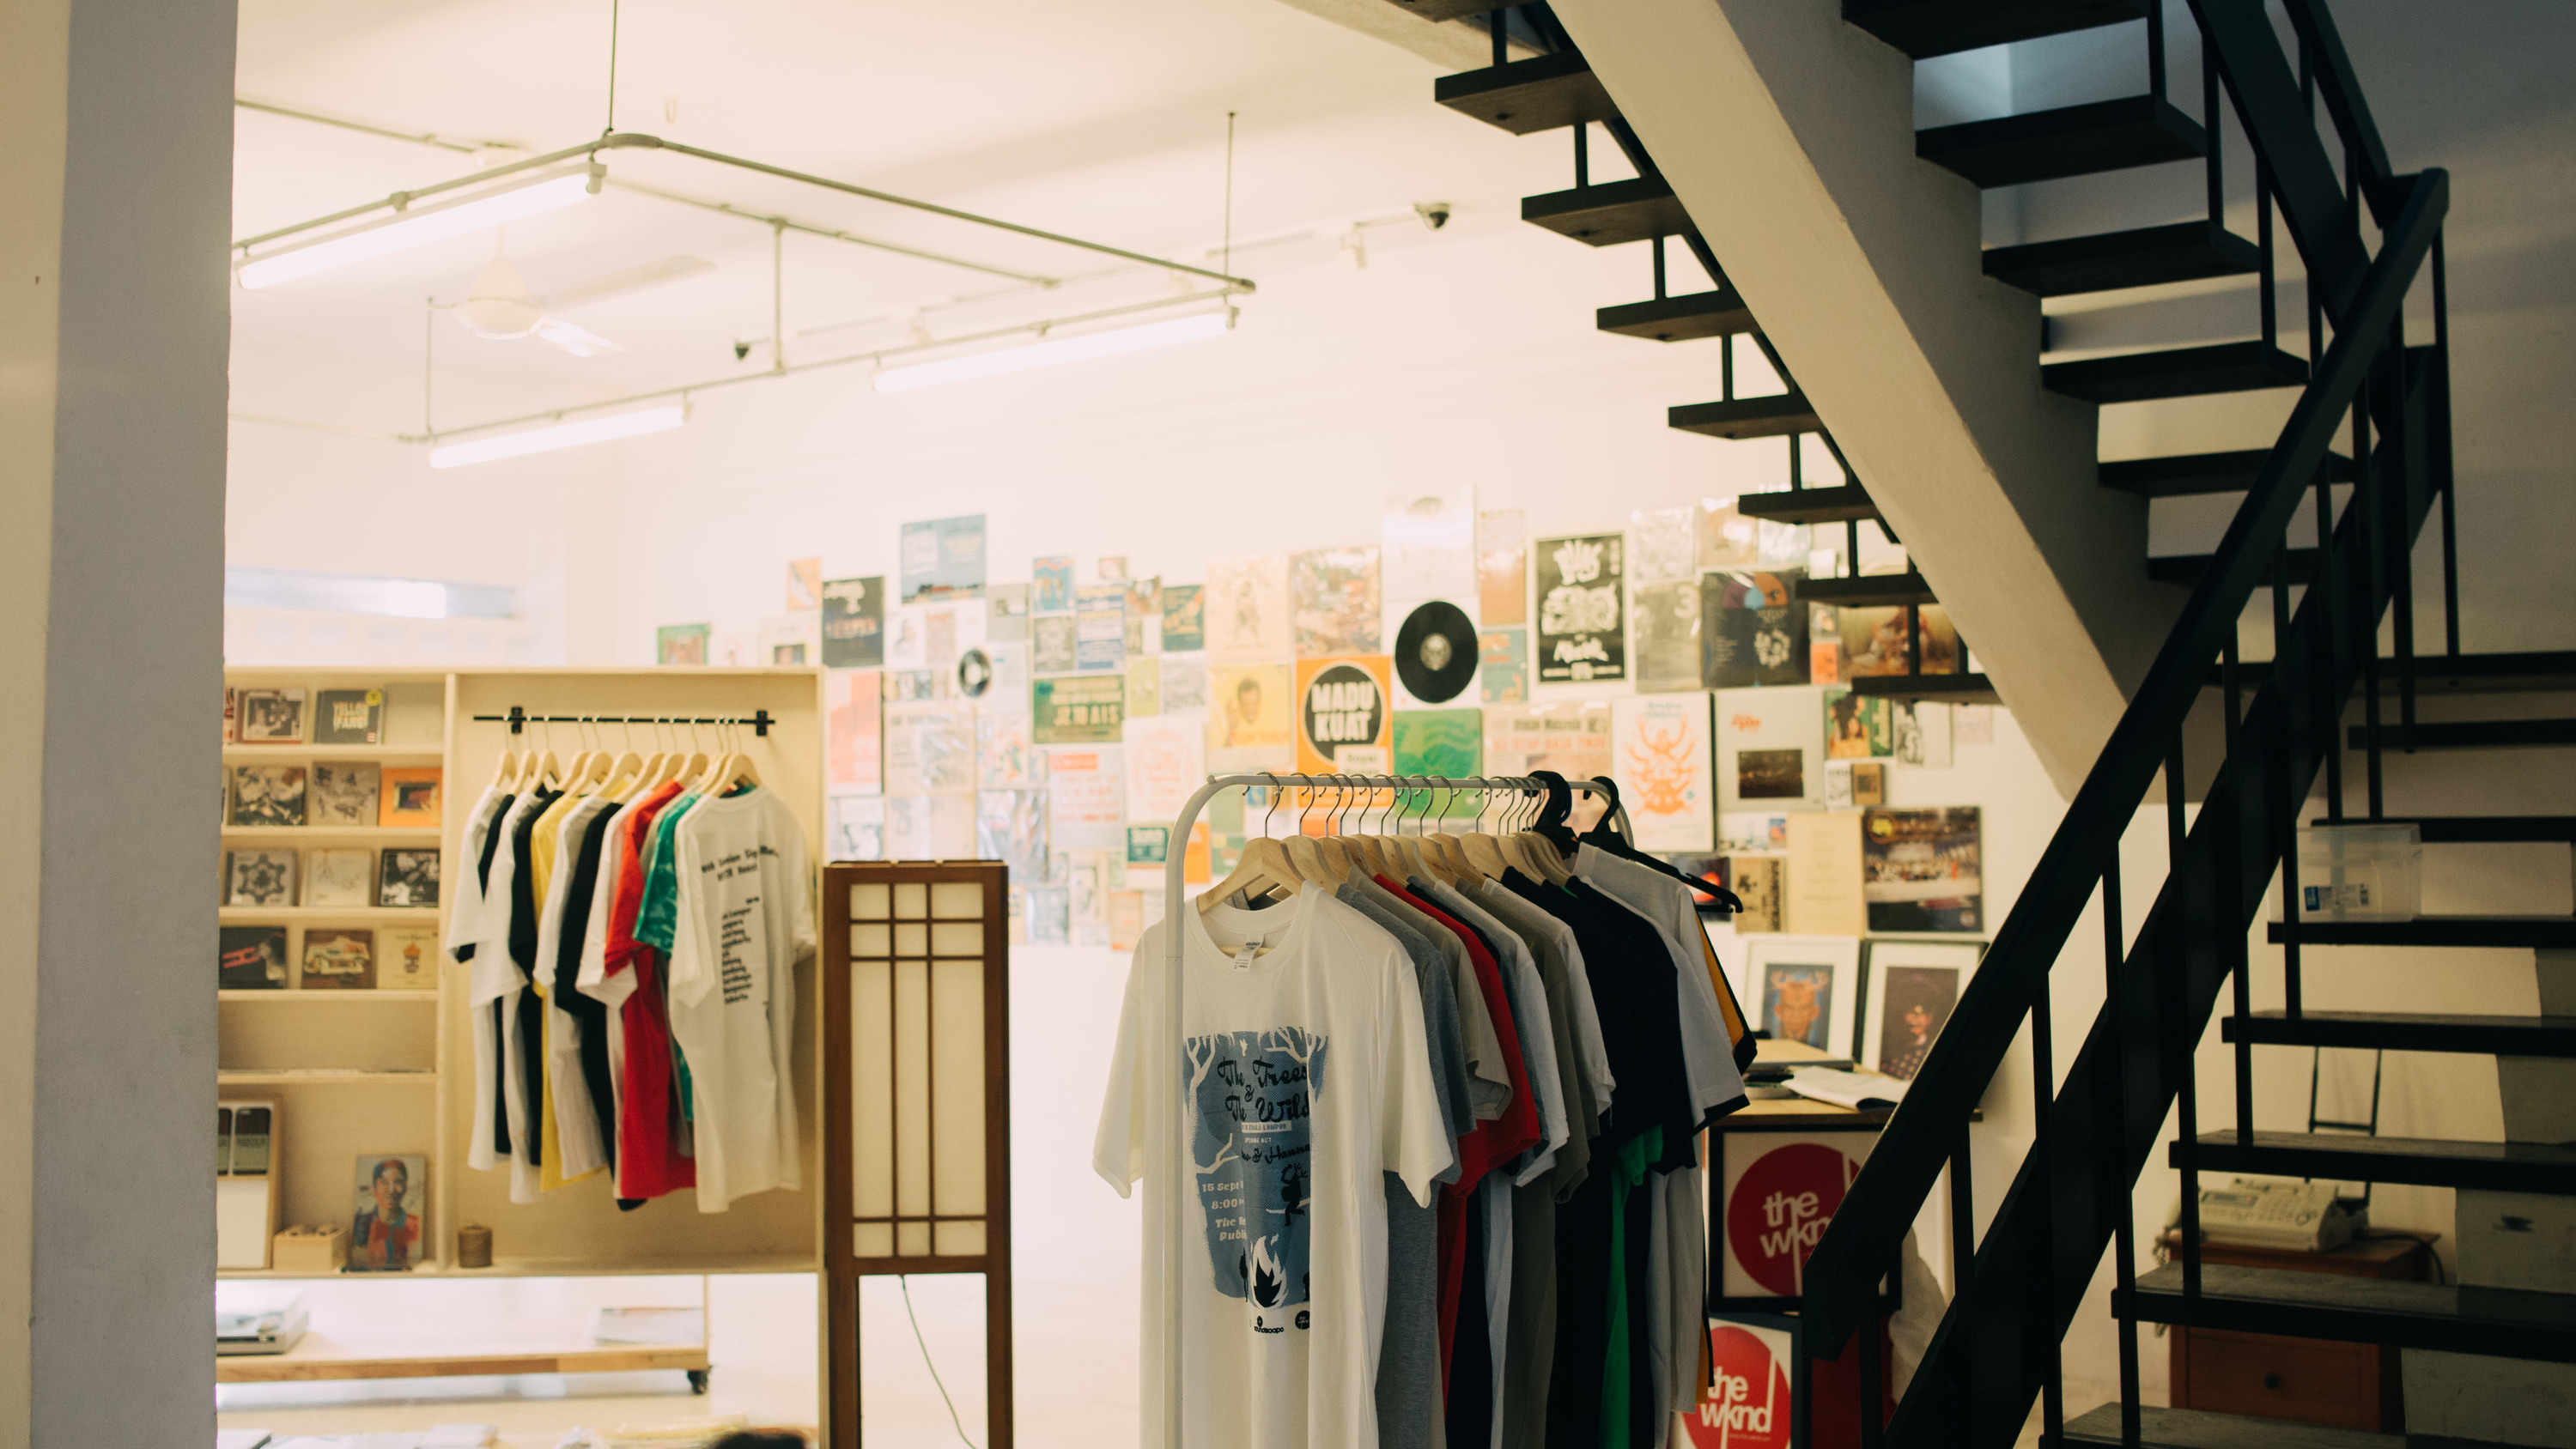 Now open: The Wknd Store